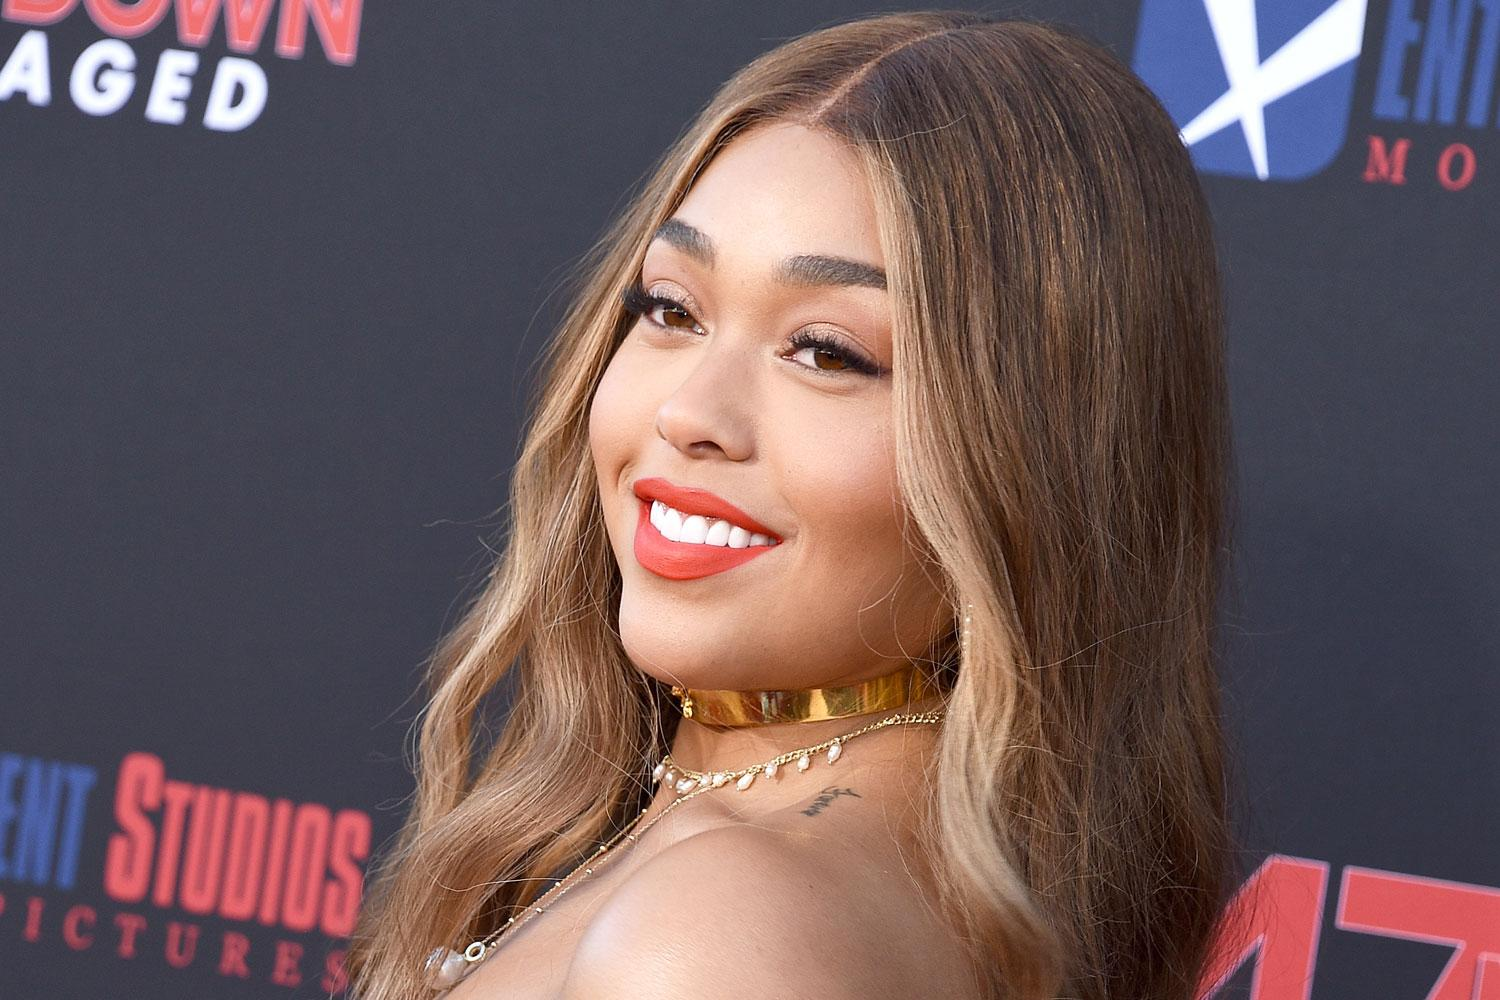 Jordyn Woods Shares A Photo Since She Was A Kid And Blows Fans' Minds: 'Little Jordy Looks Like Stormi Webster!'